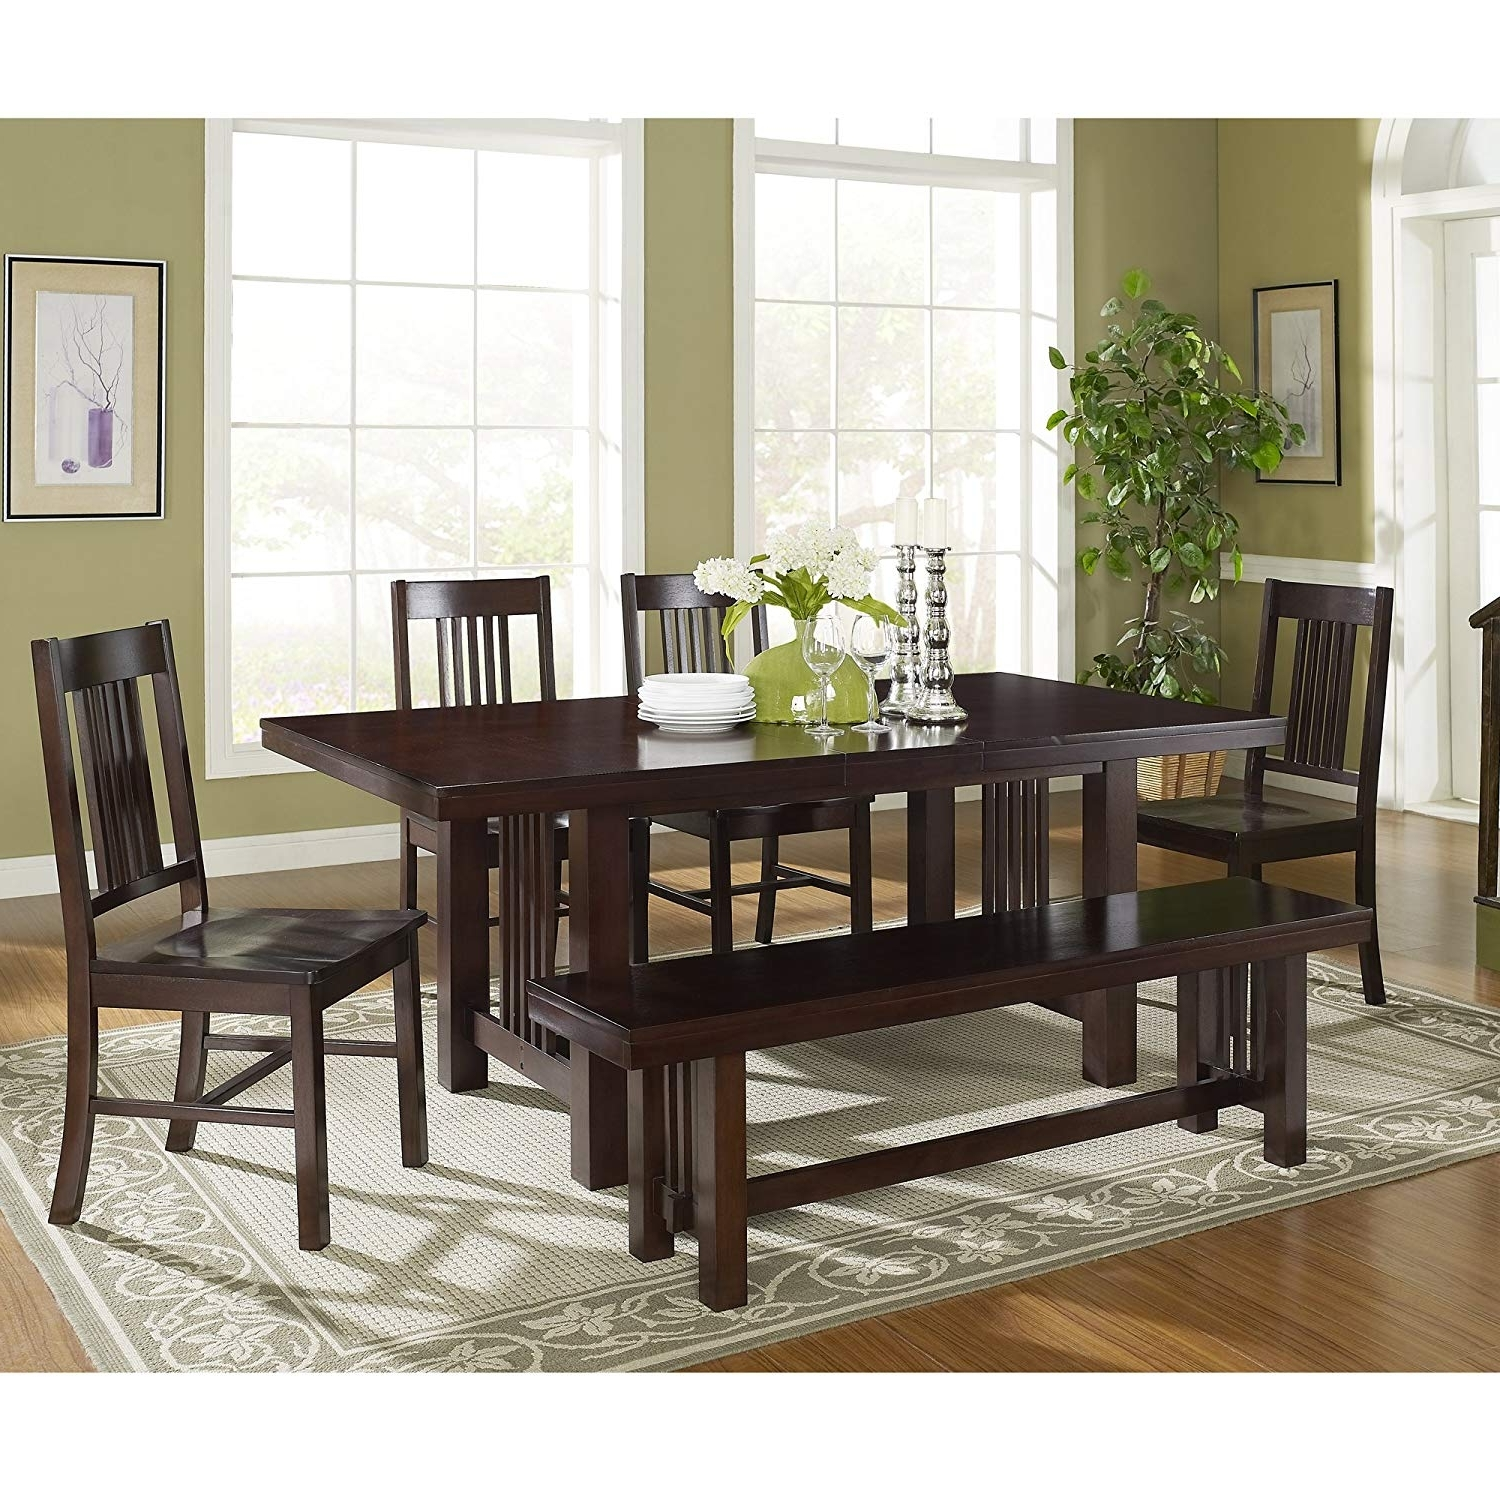 Most Popular Patterson 6 Piece Dining Sets Pertaining To Amazon – 6 Piece Solid Wood Dining Set, Cappuccino – Table Benches (Gallery 15 of 25)